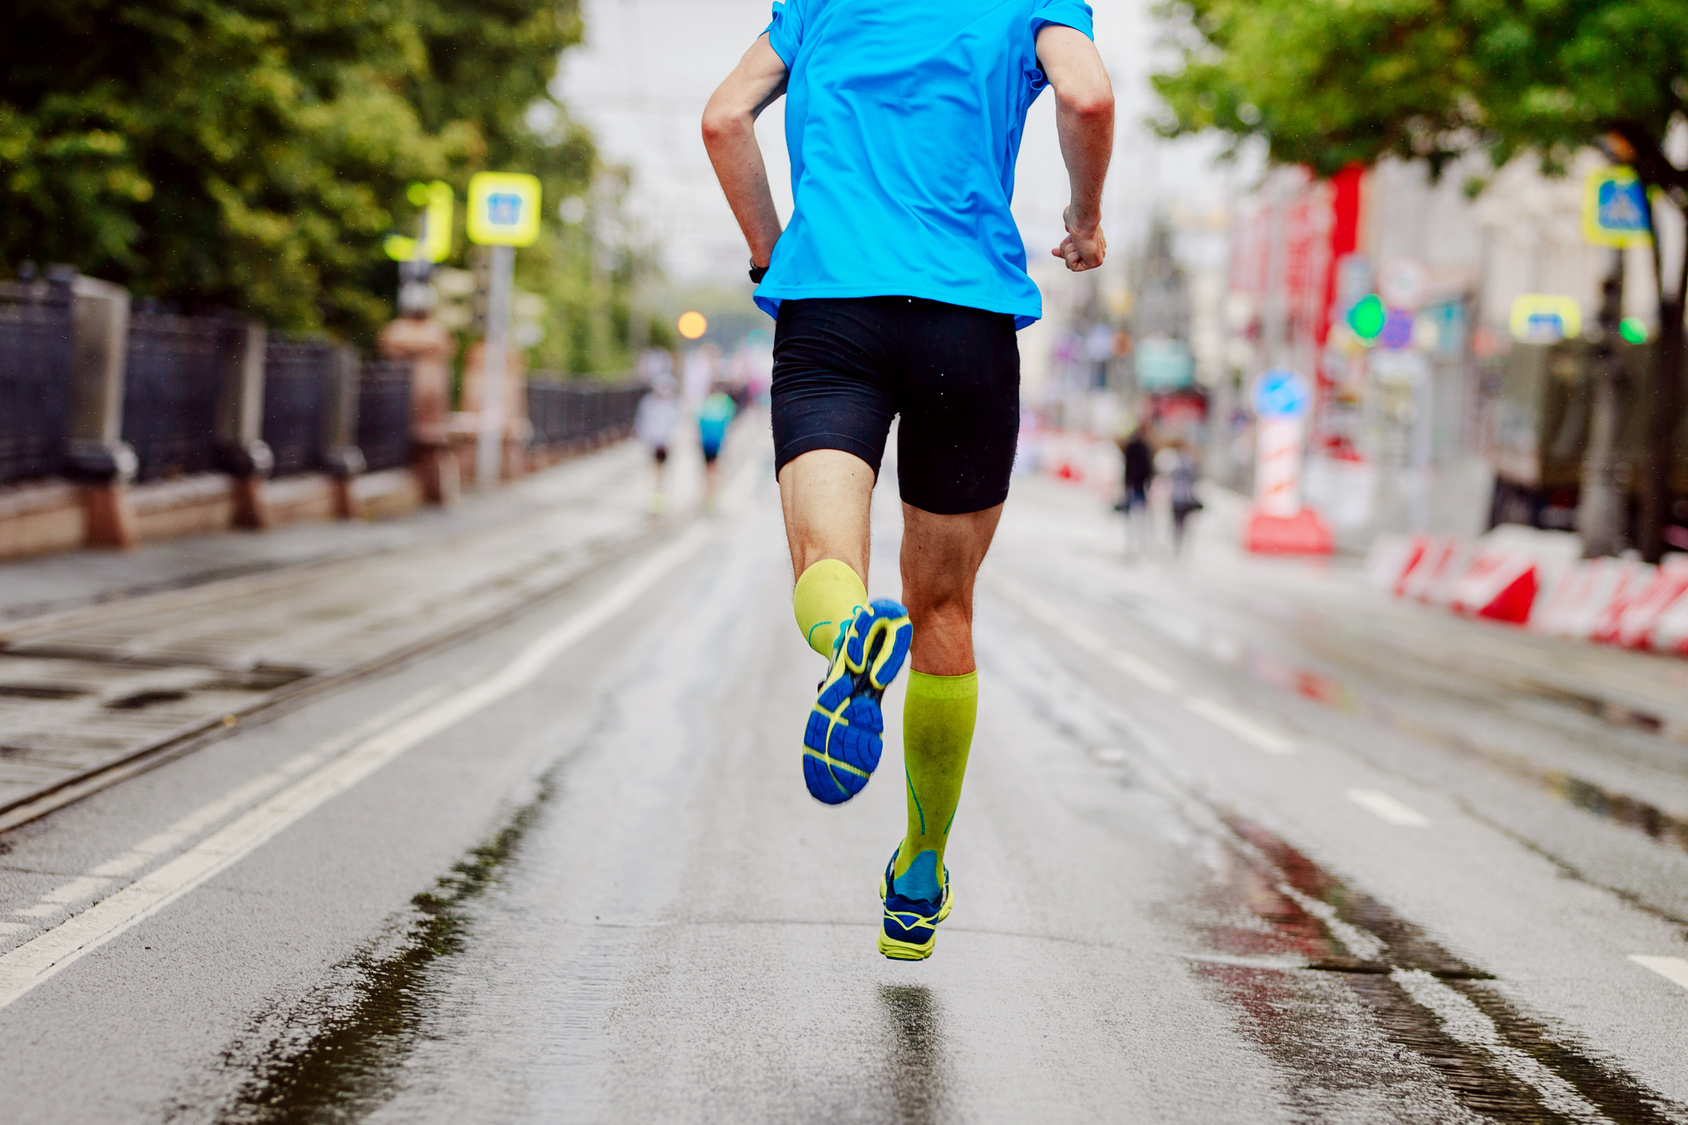 runner tyring to improve Lung Capacity